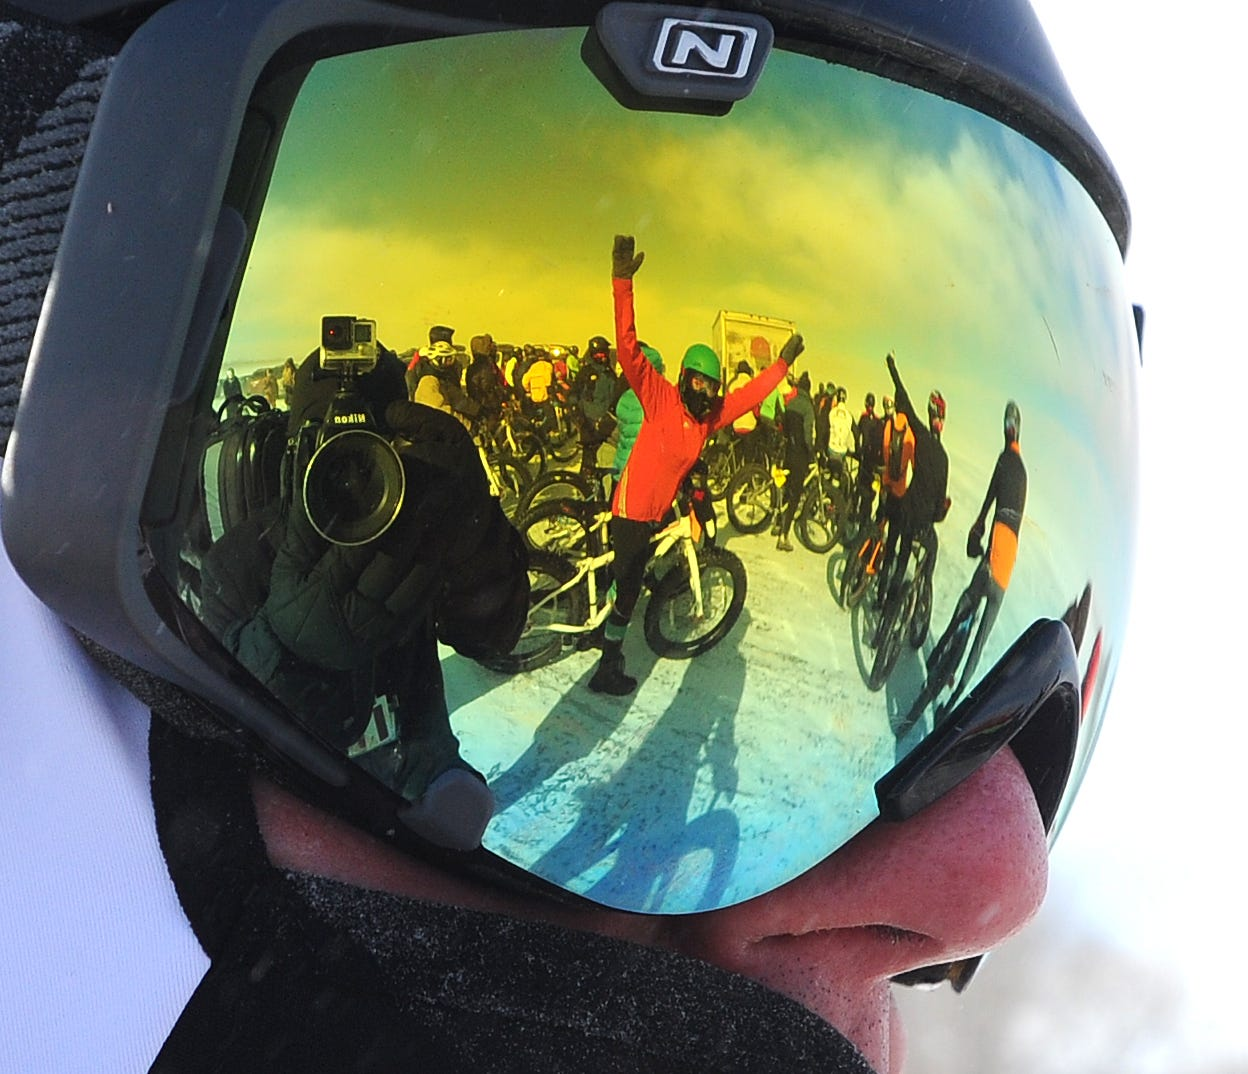 Bicycling on ice, Spear the Fatty- Fat Tire Race on Lake Winnebago during Sturgeon Stampede.